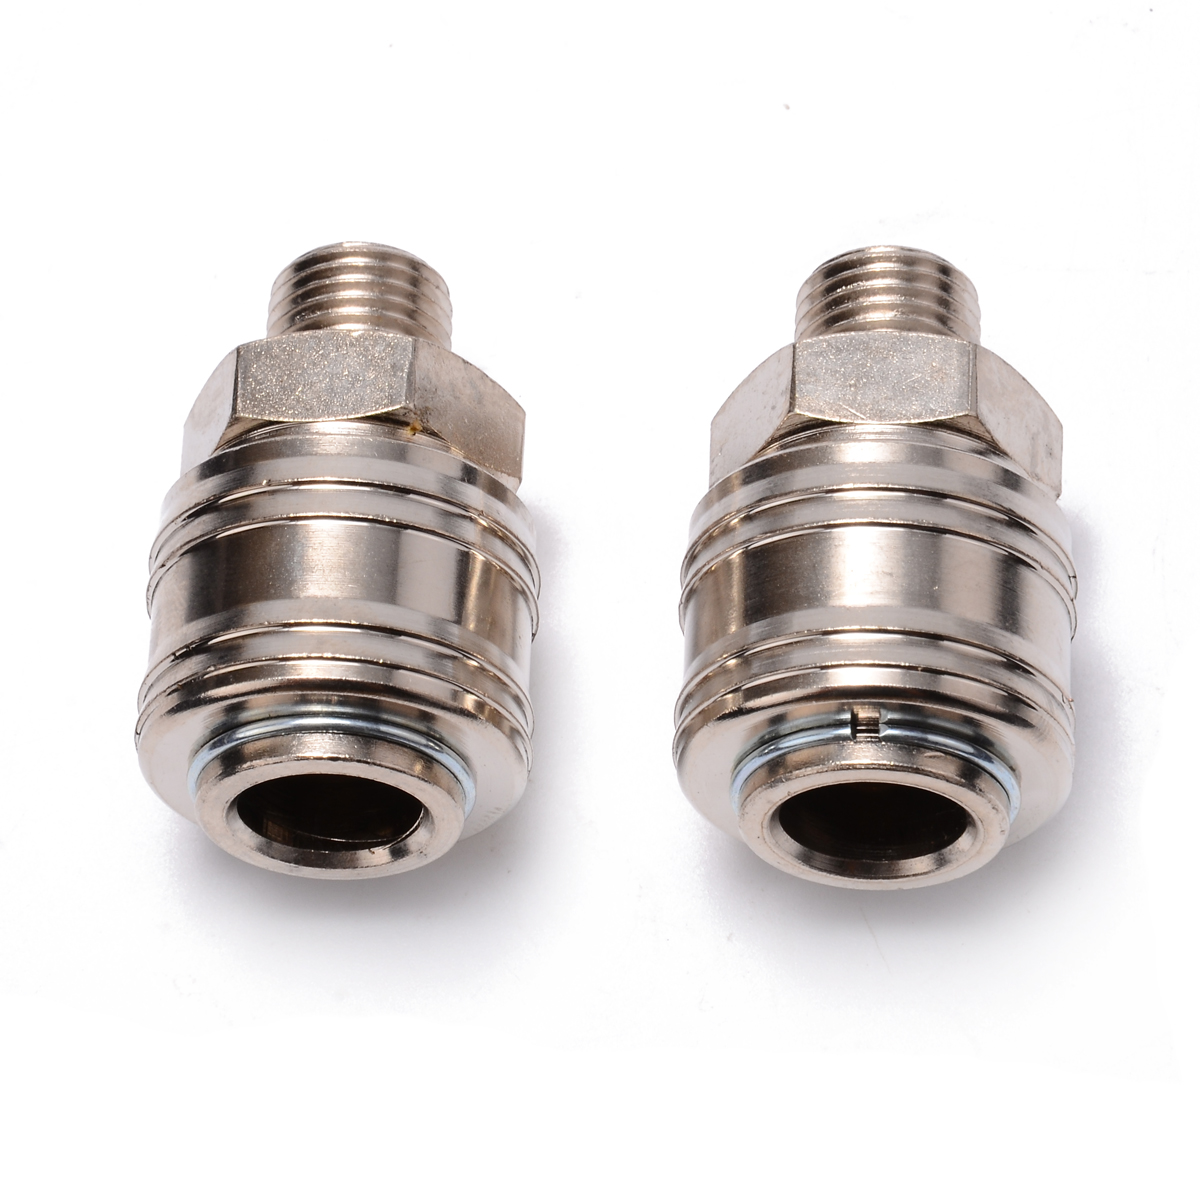 2pcs 1/4 BSP Male Line Hose Connector Euro Female Quick Release Fitting Coupling Set For Air Compressor 2pcs air line hose connector euro female quick release fitting with 1 4 bsp male thread mayitr for home tool accessories